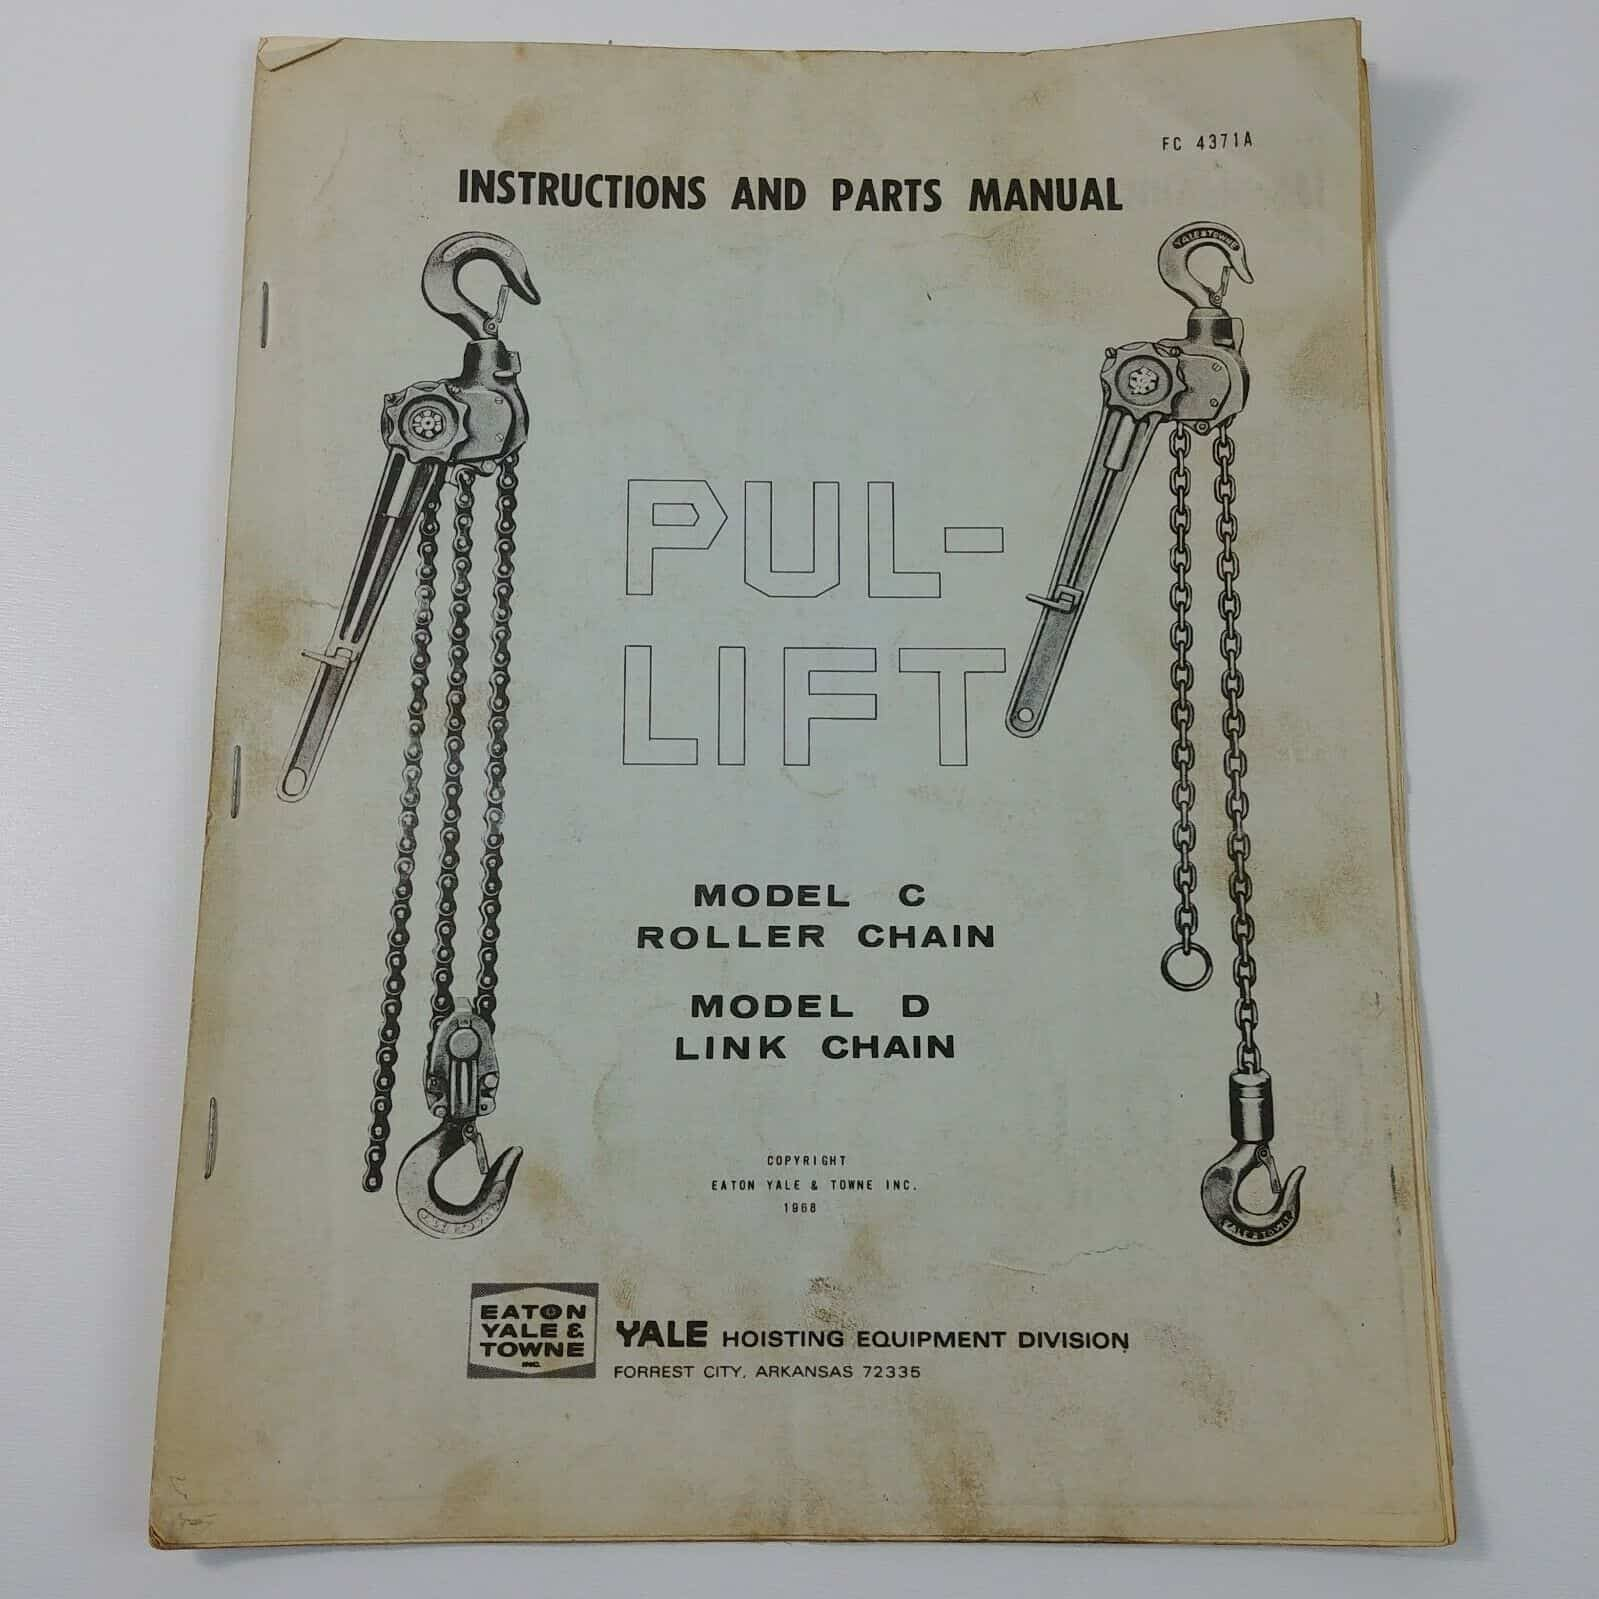 hight resolution of instructions parts manual lift model c roller chain